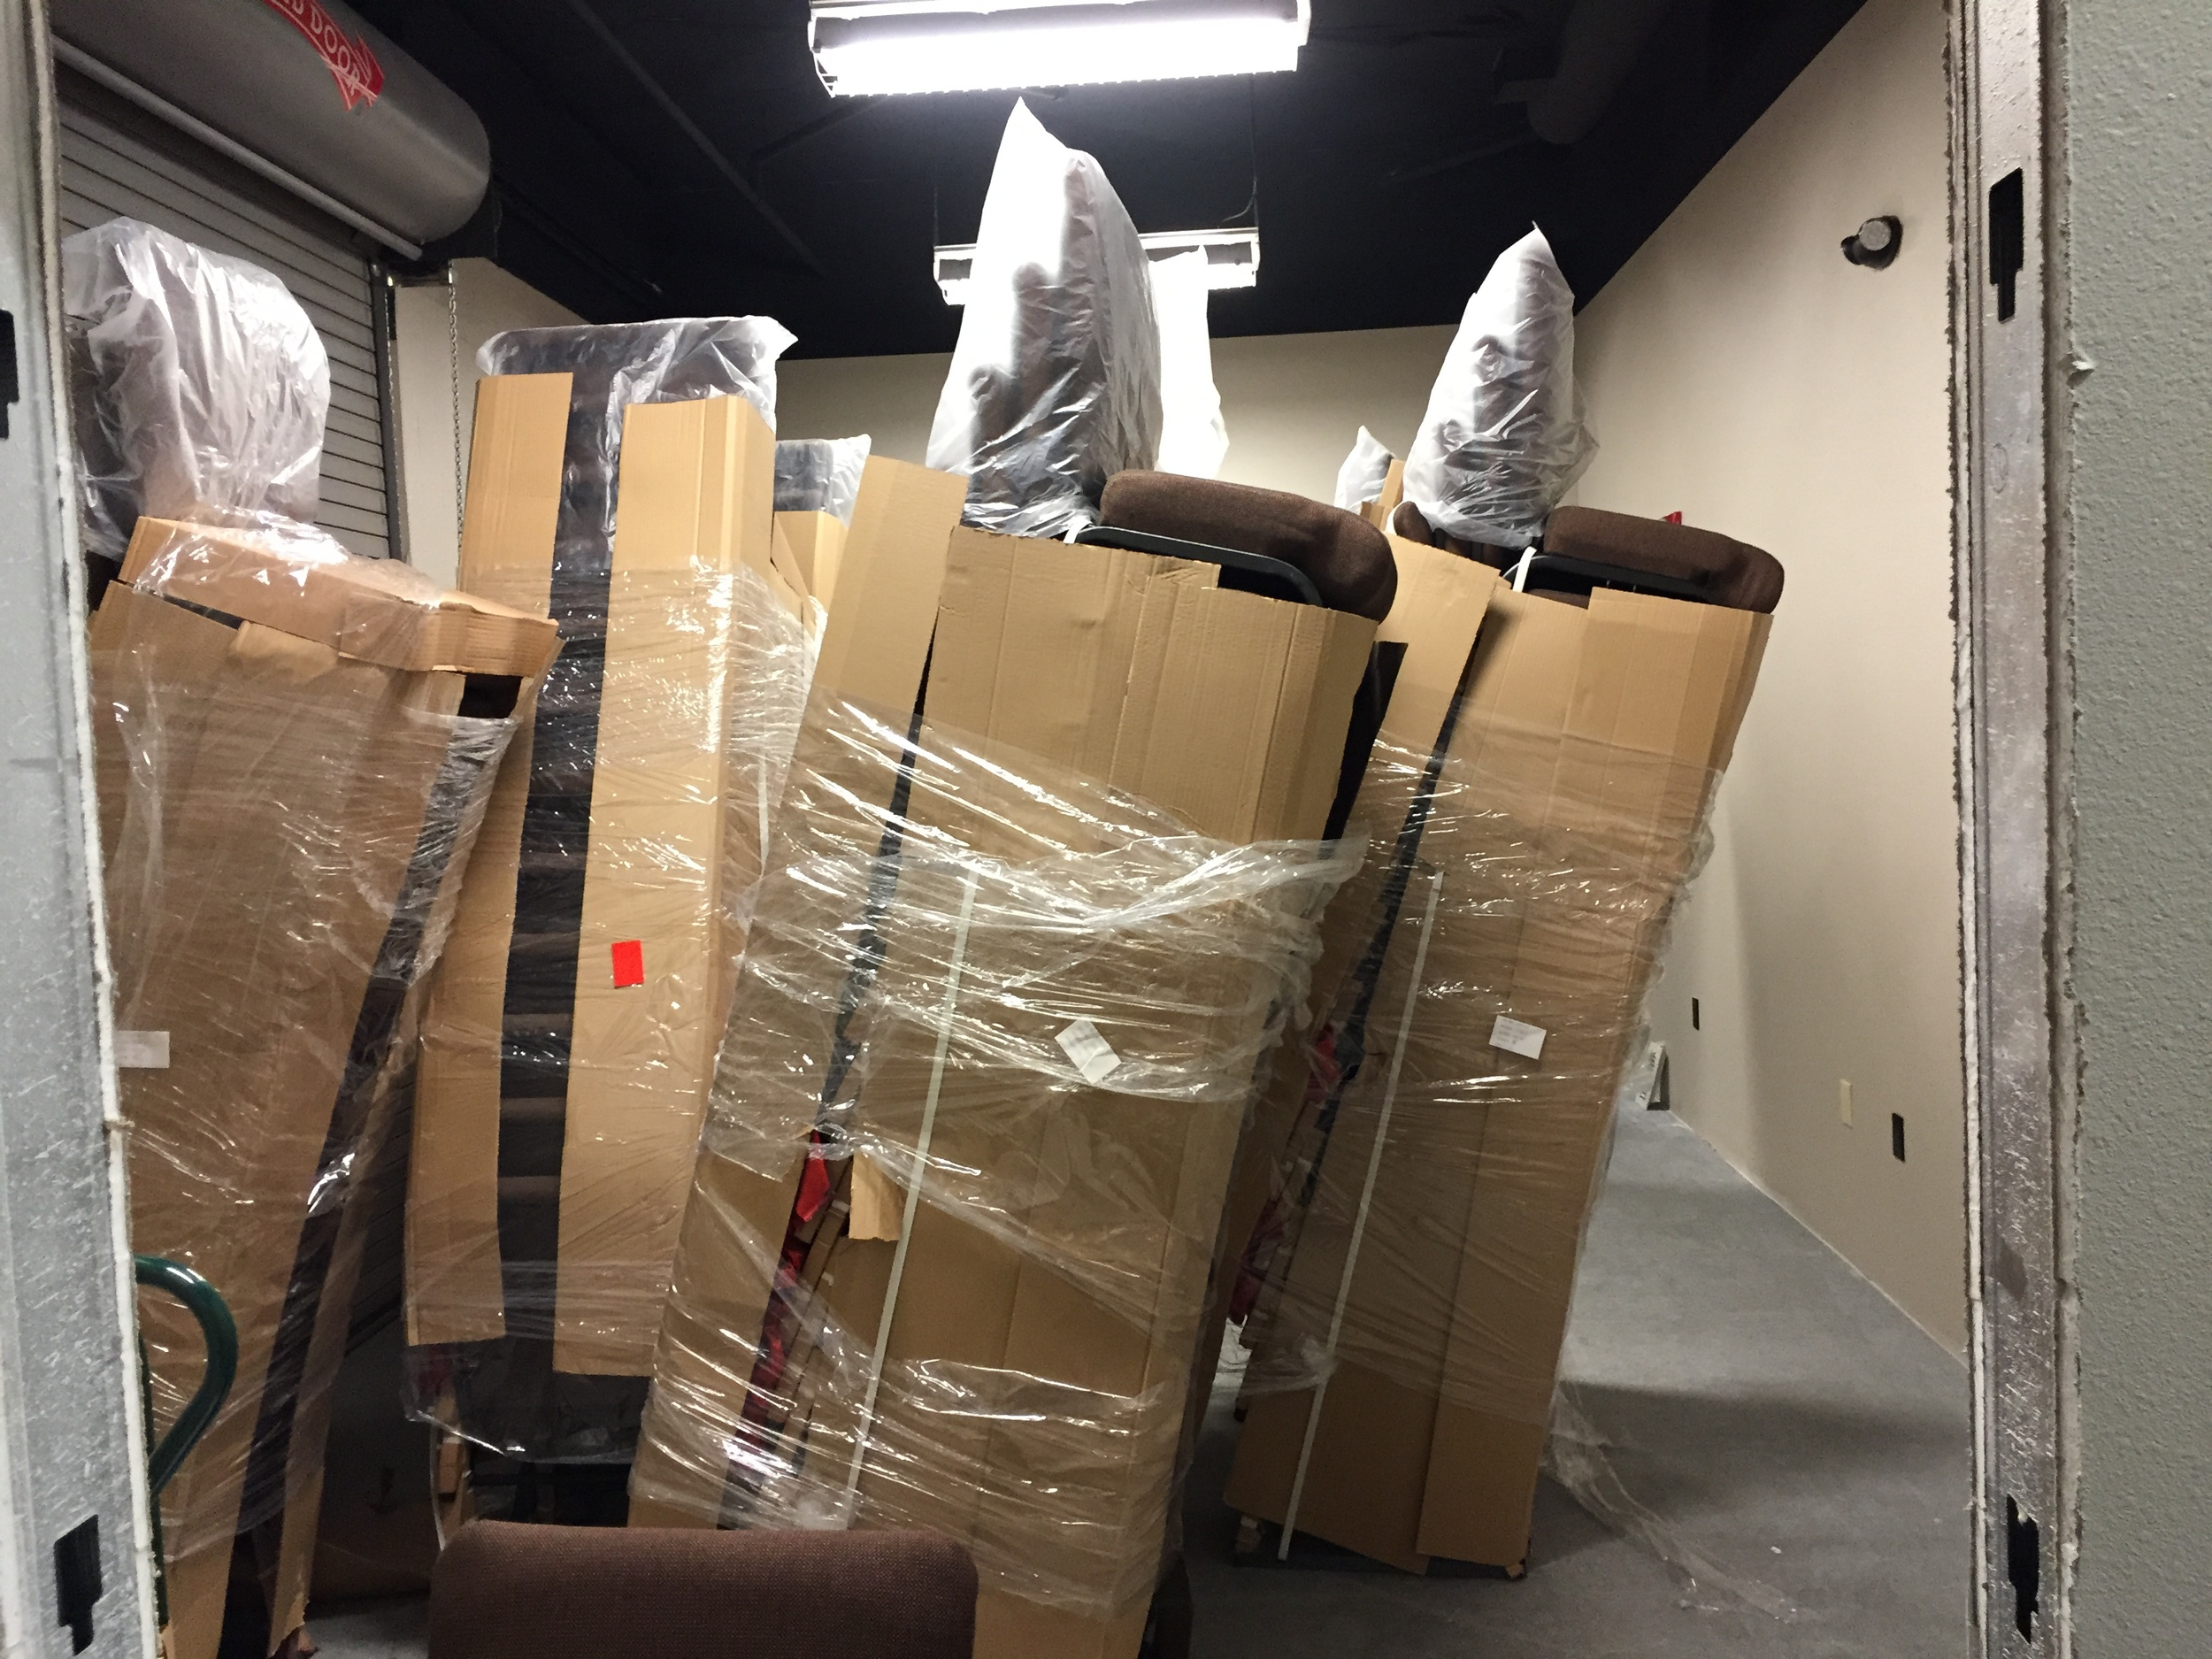 So that's what 250 chairs waiting to be set up look like!